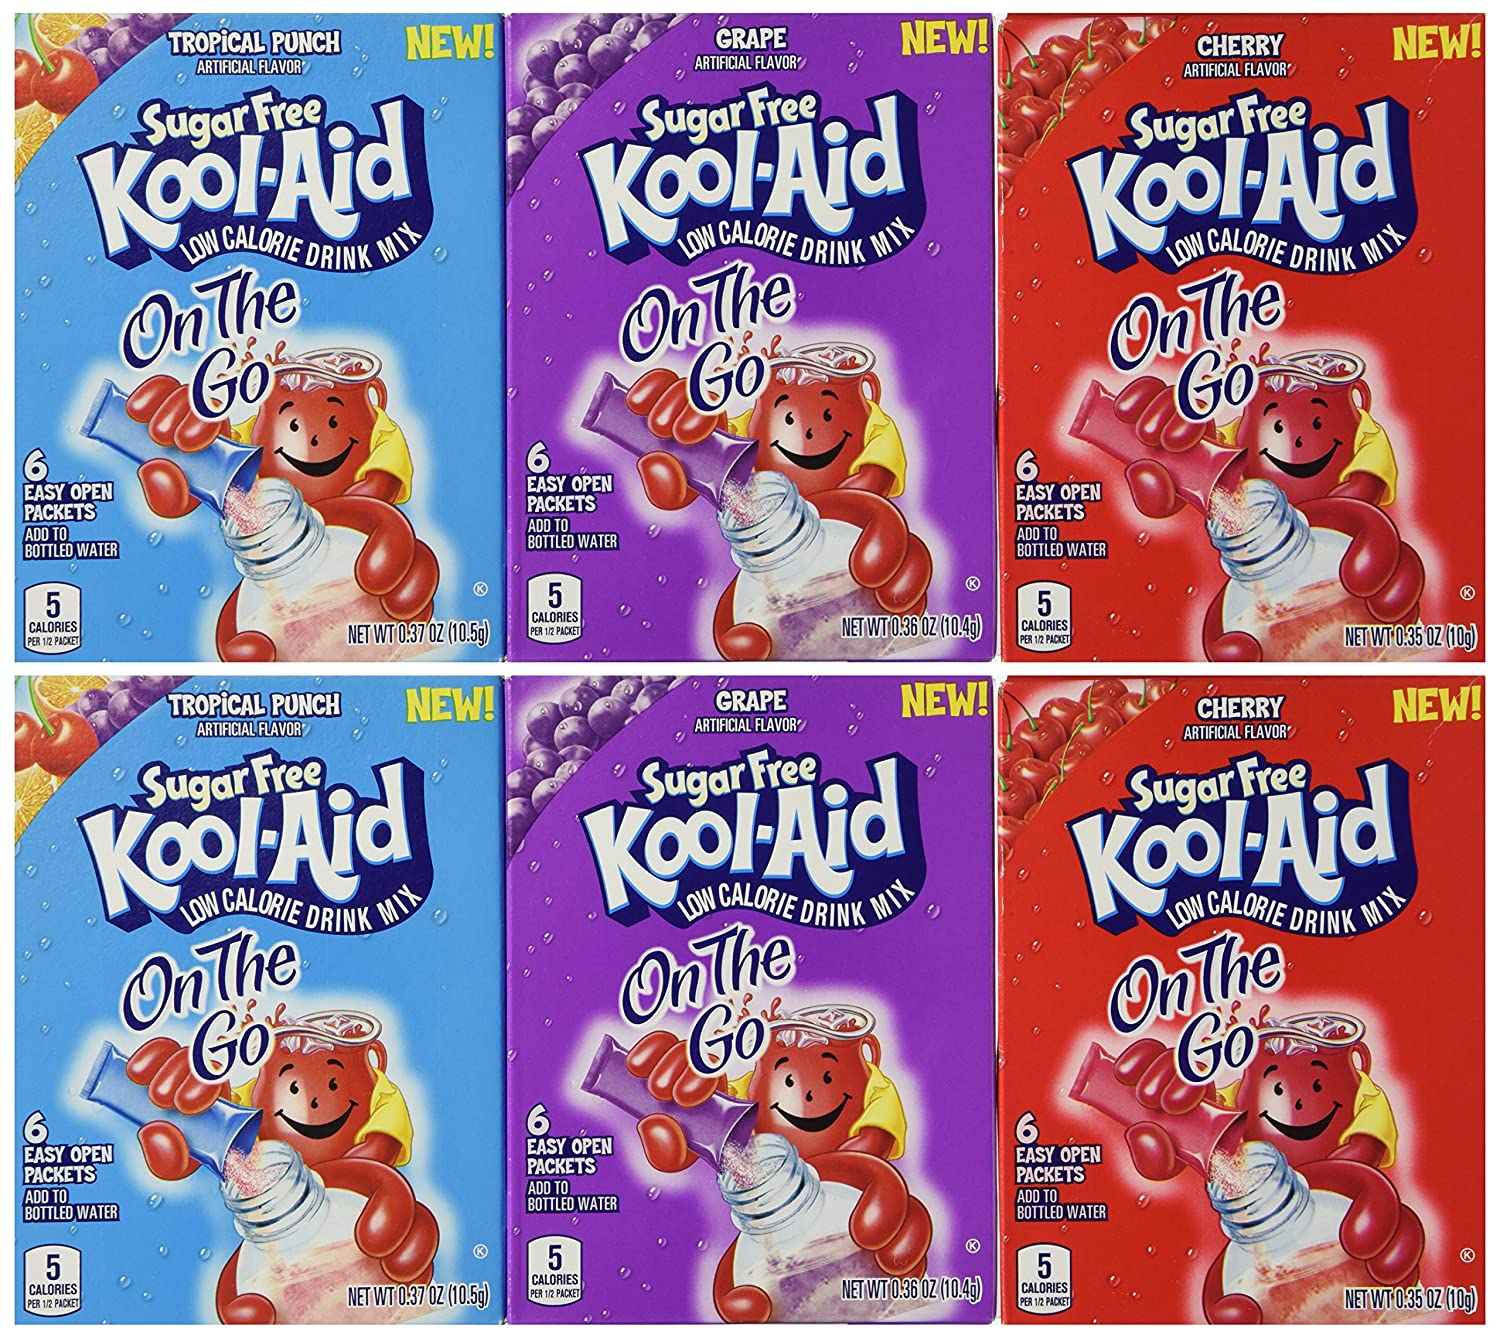 Kool-aid On the Go